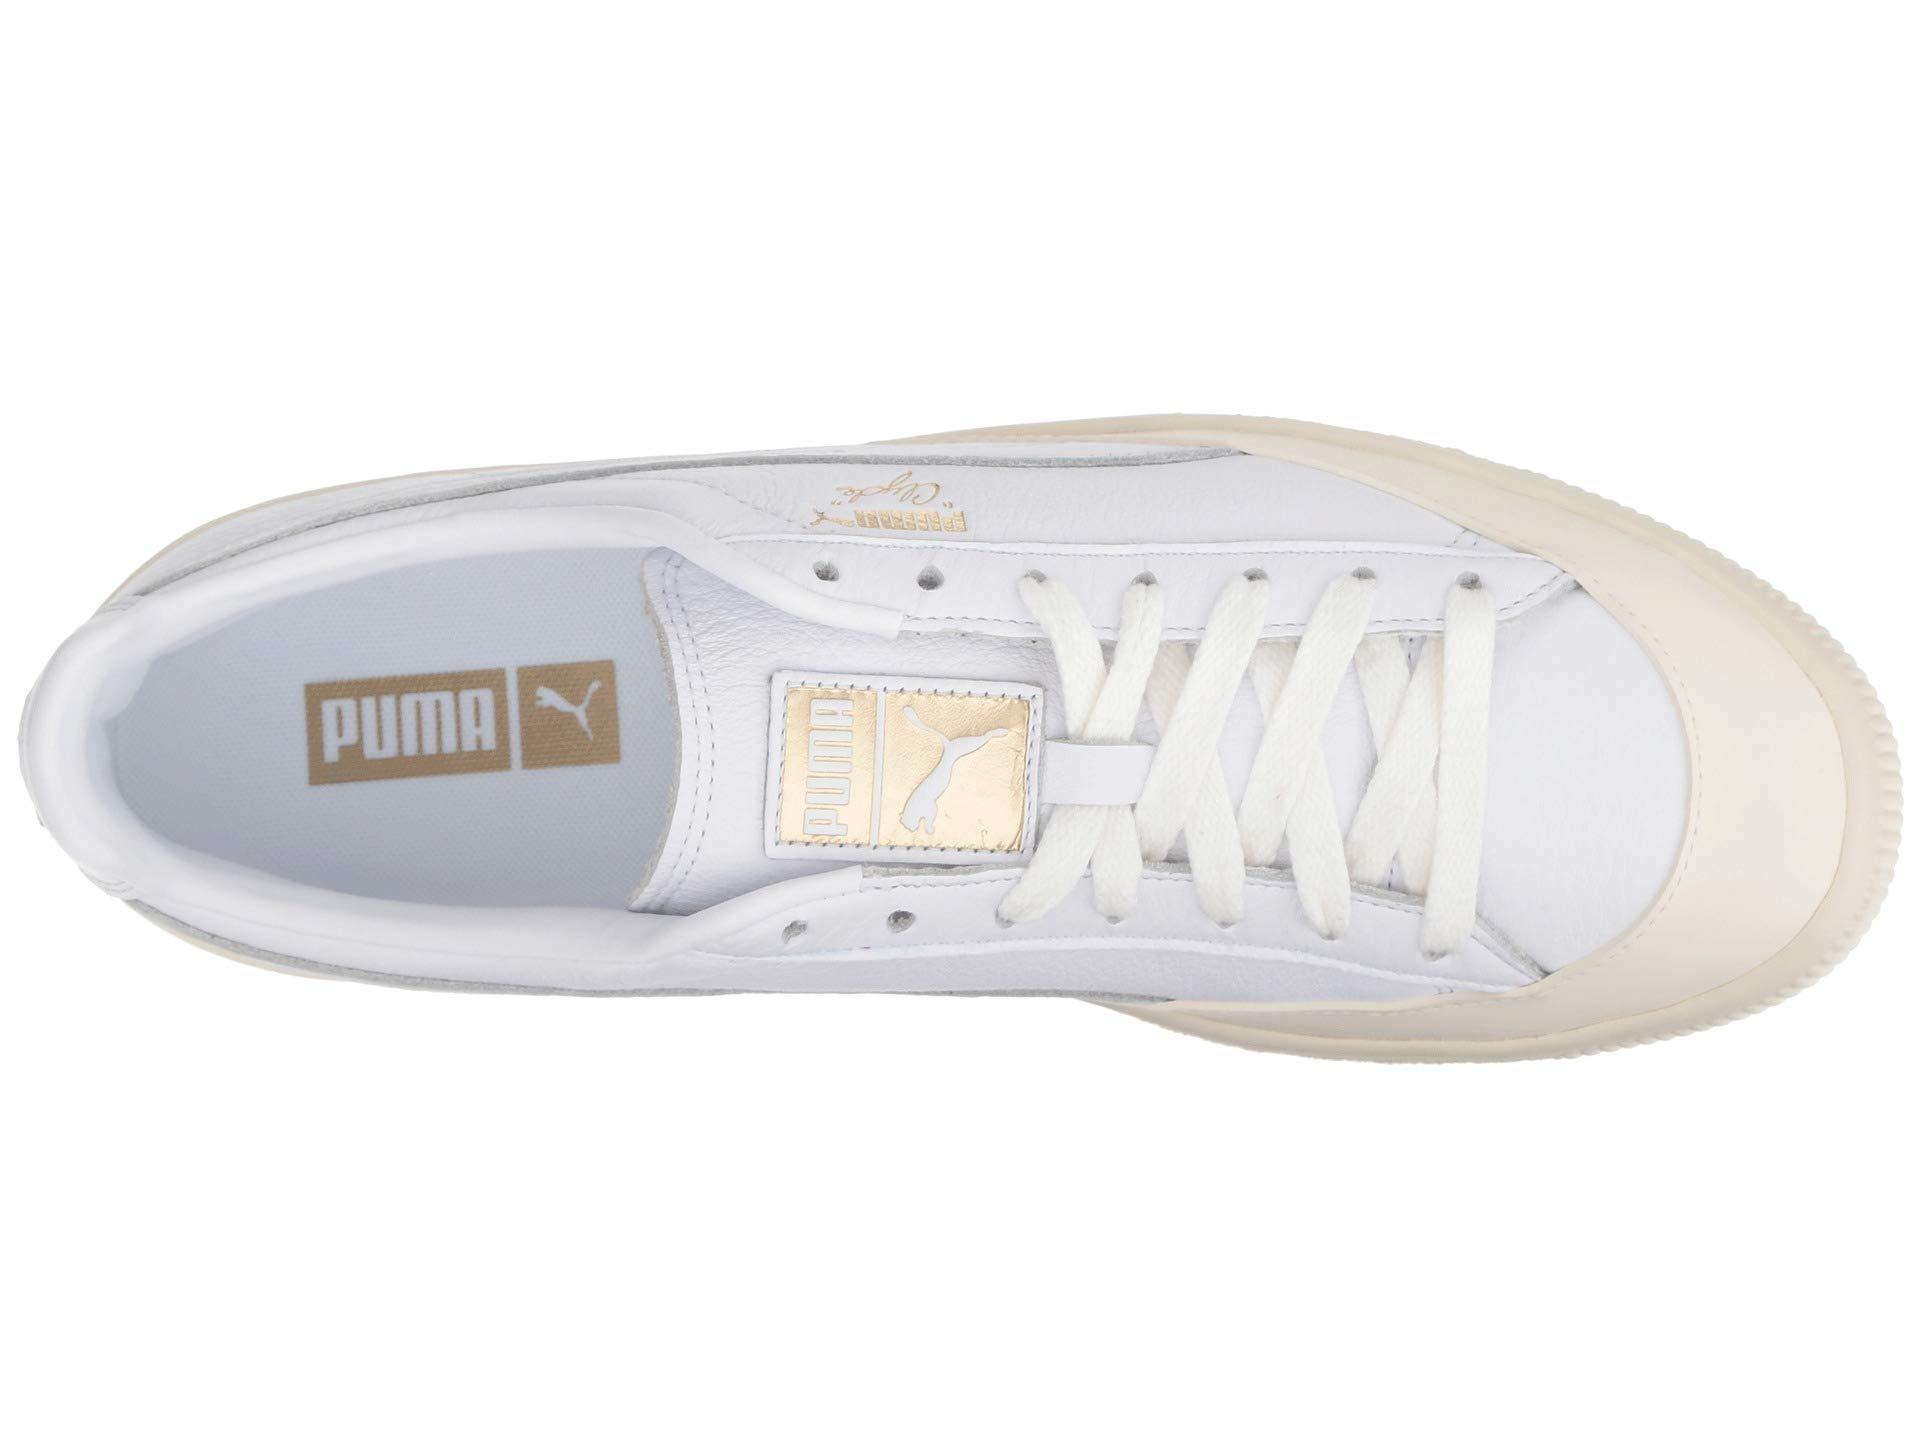 4740617cc01 PUMA - White Clyde Rubber Toe Leather for Men - Lyst. View fullscreen